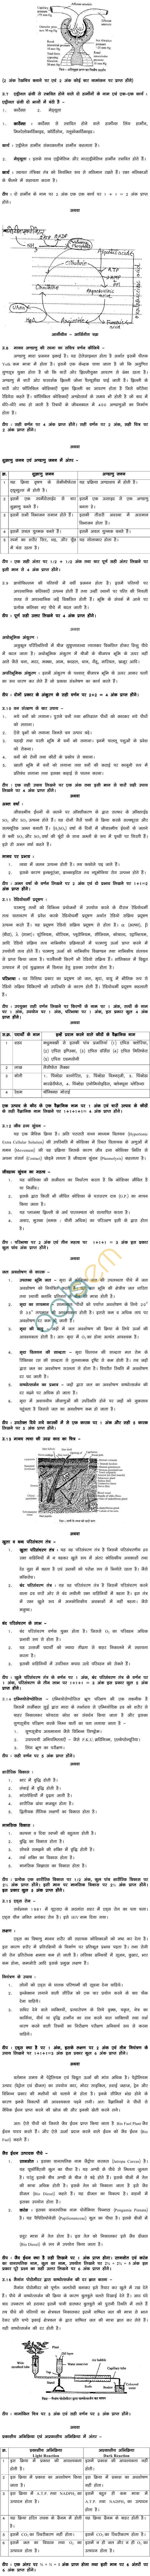 MP BoardClass XII Biology Model Questions & Answers -Set 1